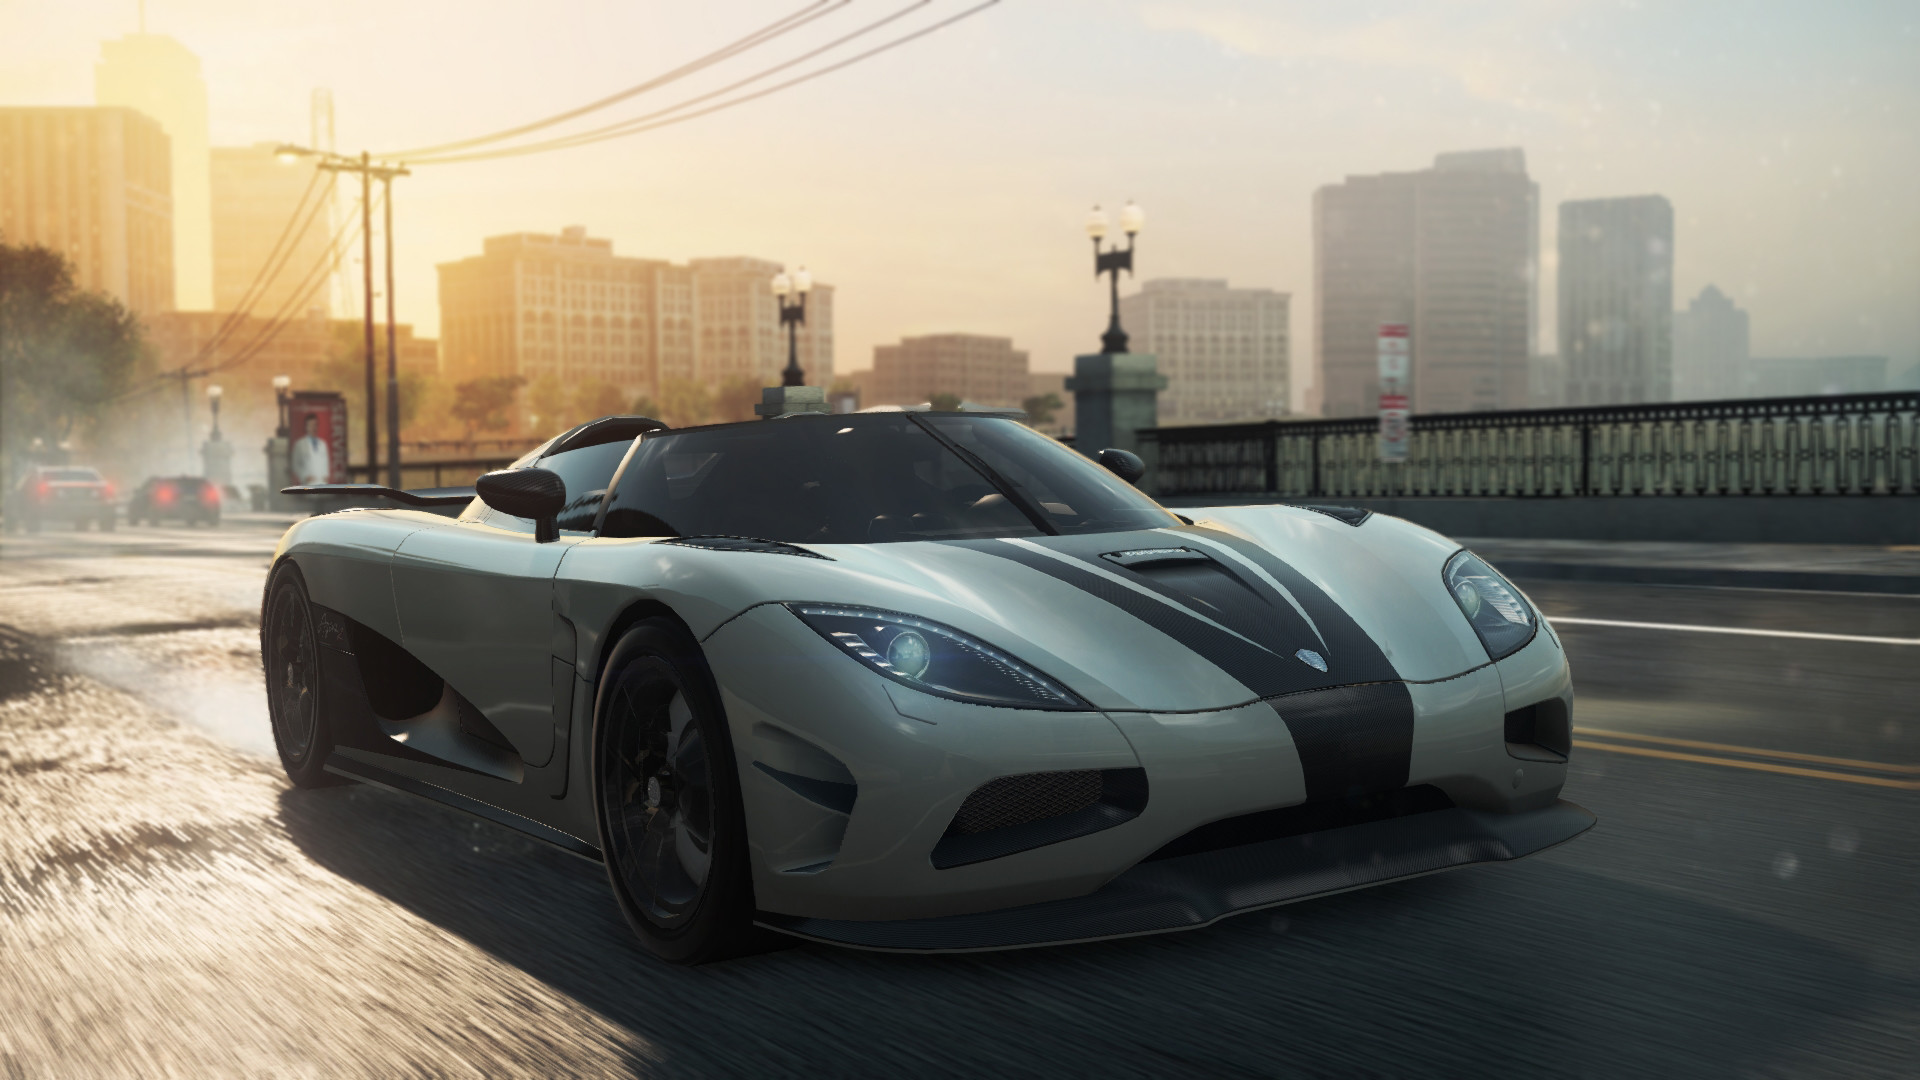 Nfs Most Wanted 2012 Cars Wallpapers Koenigsegg Agera R Wallpaper 1080p 71 Images